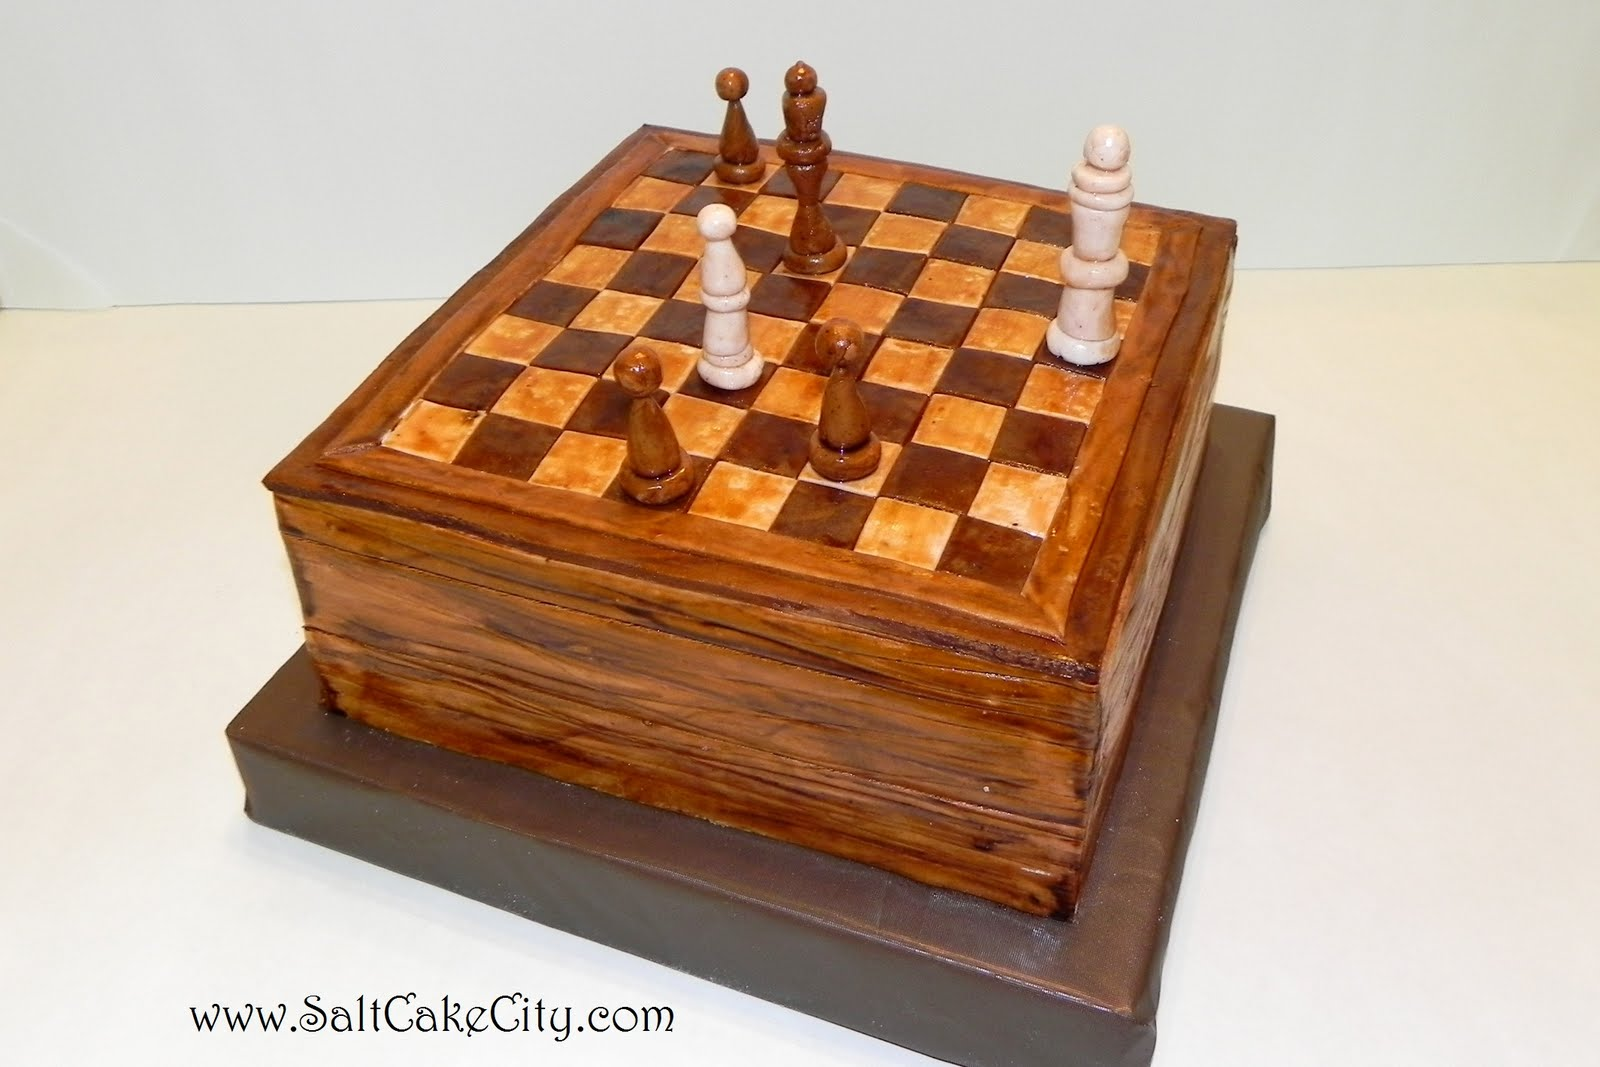 Salt Cake City Wooden Chess Board Cake